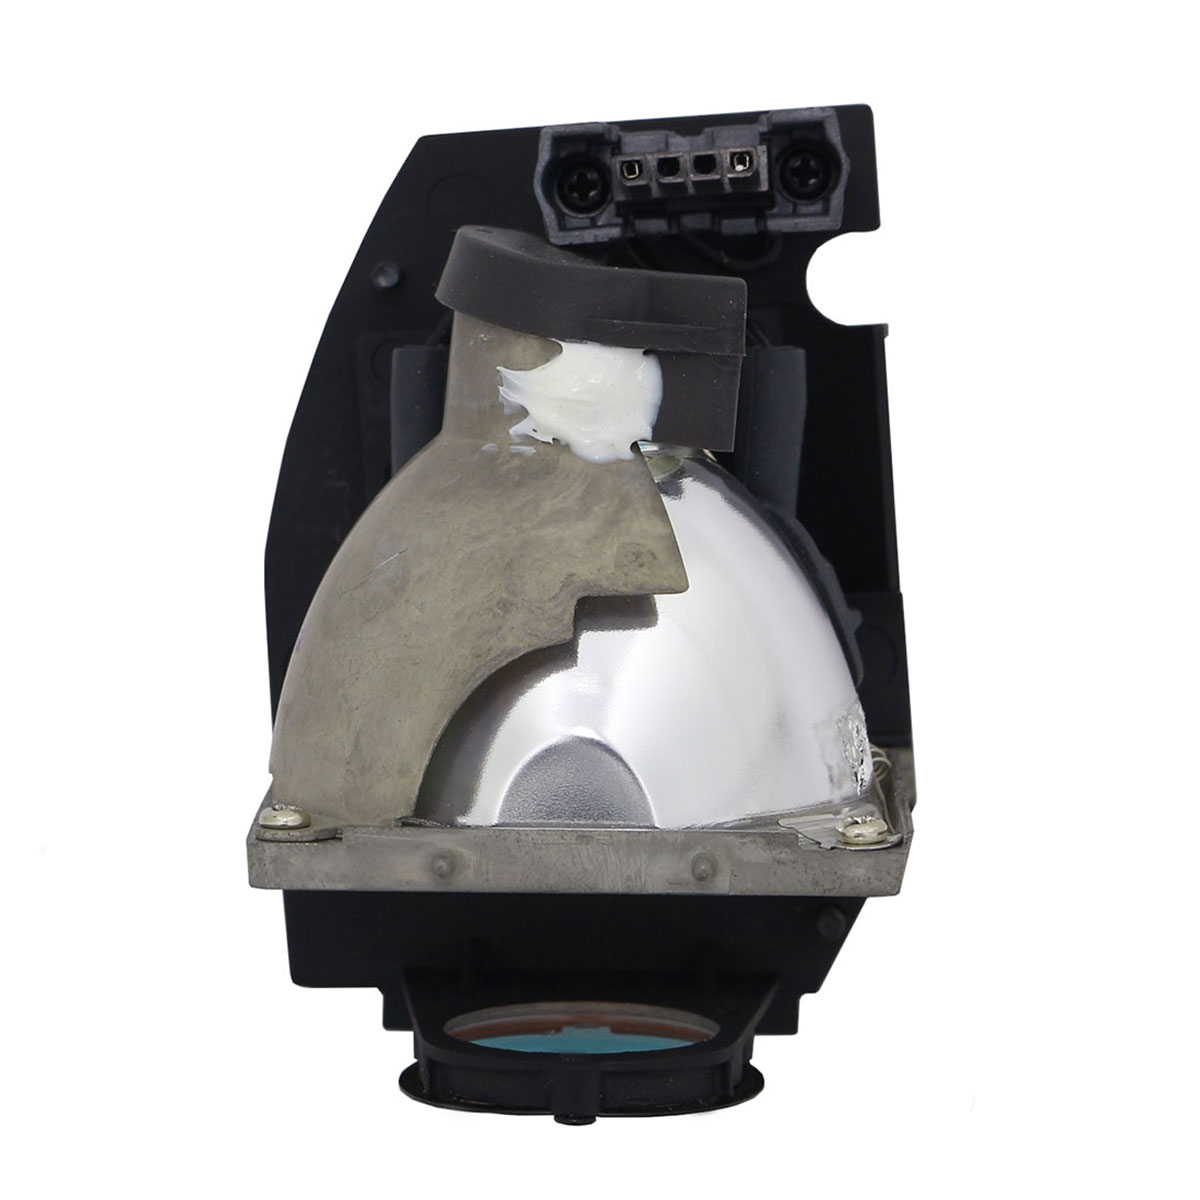 Power by Philips Replacement Lamp Assembly with Genuine Original OEM bulb inside for Mitsubishi VS-67PHF50U Projector